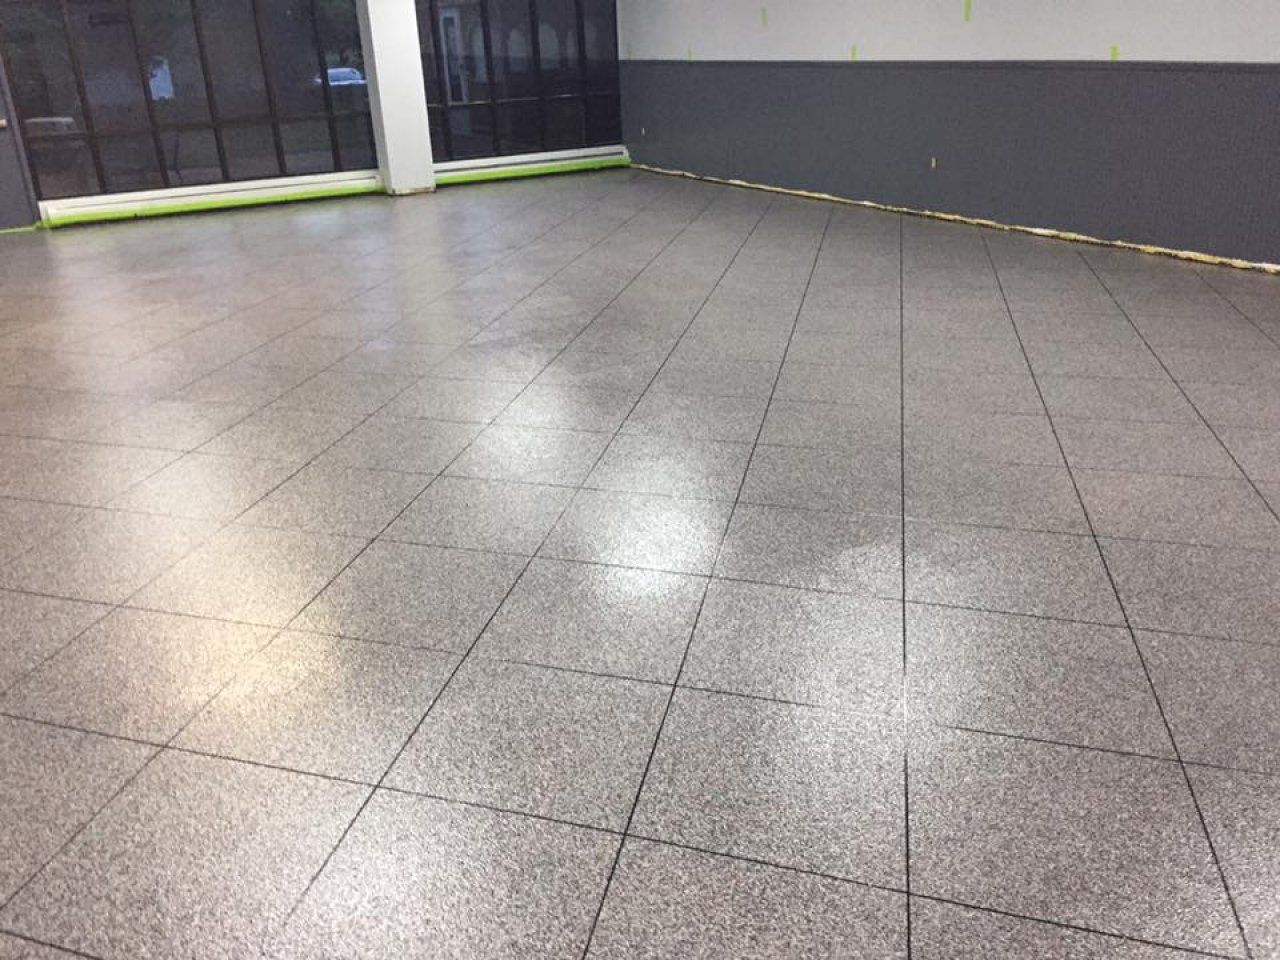 Durable And Decorative Epoxy Tile Flooring In Harrisonburg, Virginia